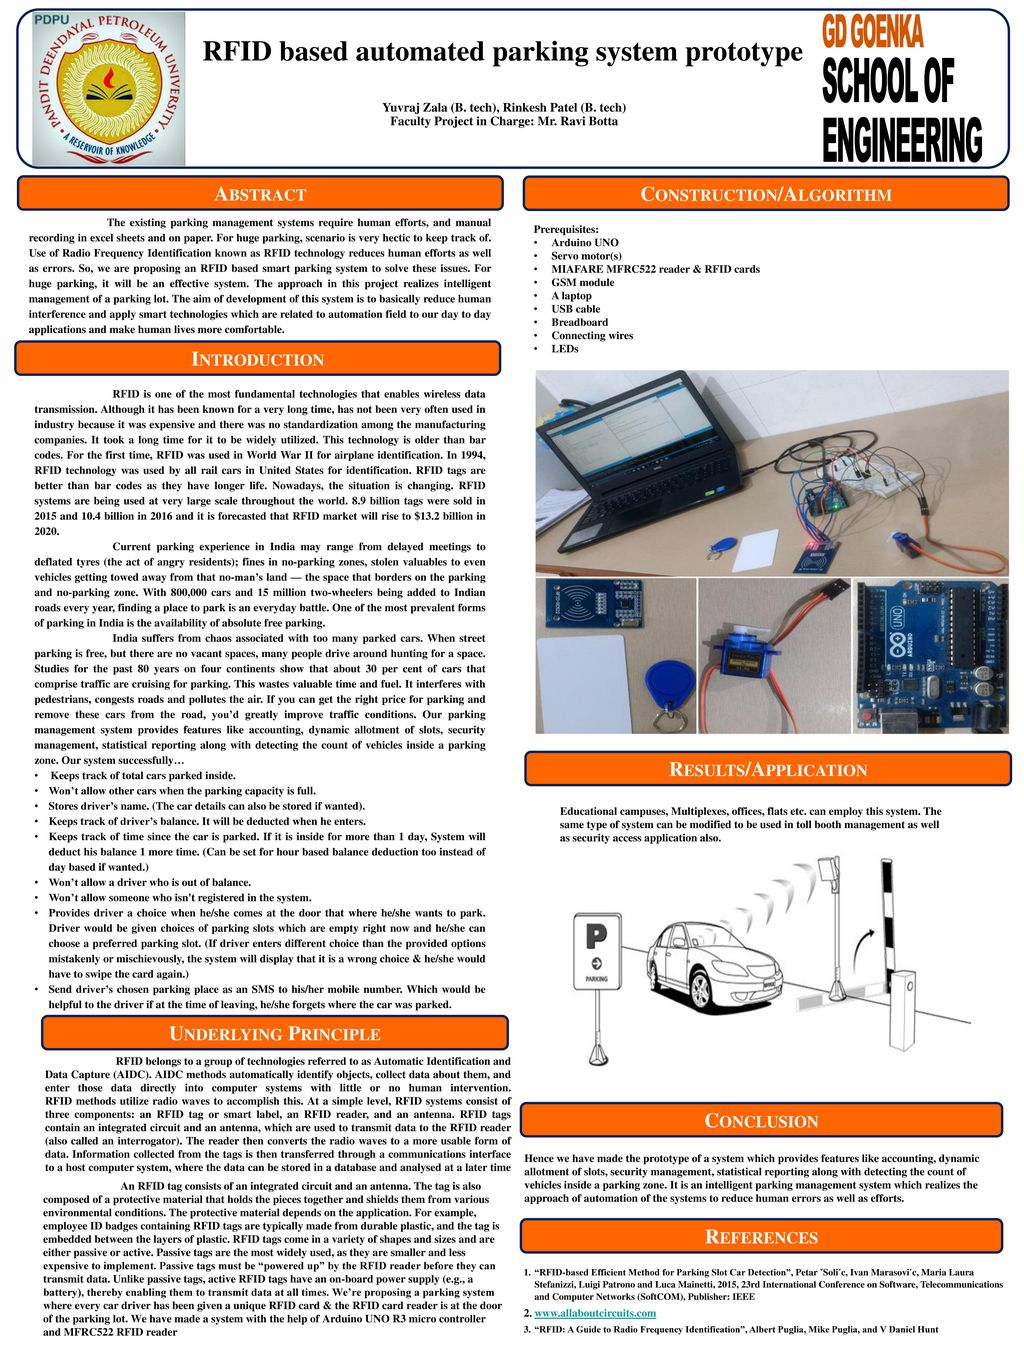 RFID based automated parking system prototype - ppt download